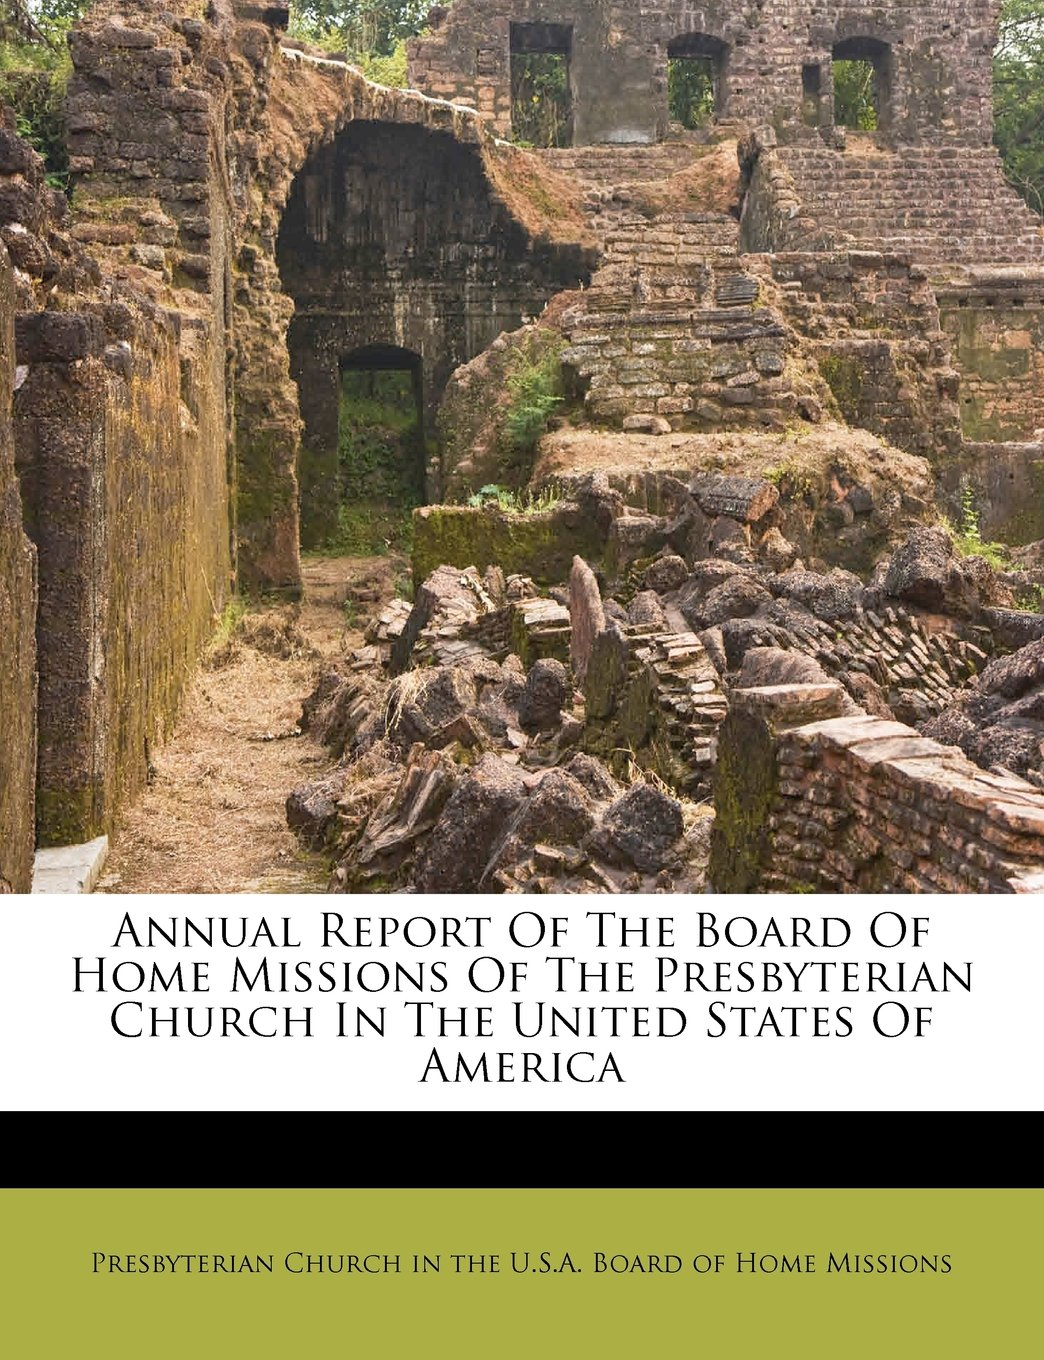 Annual Report Of The Board Of Home Missions Of The Presbyterian Church In The United States Of America PDF